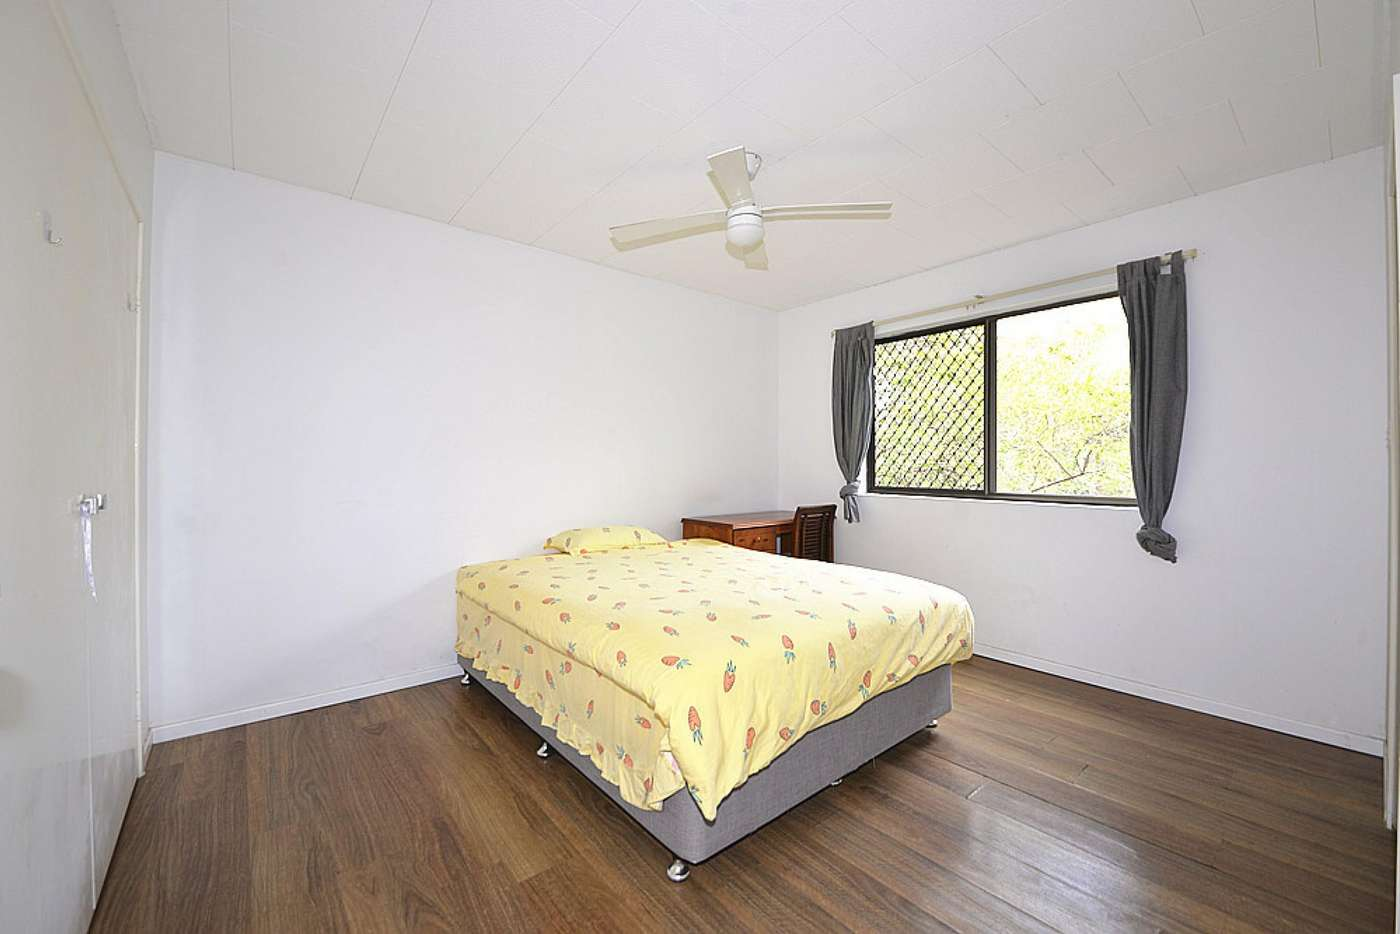 Fifth view of Homely unit listing, 3/63 Warren St, St Lucia QLD 4067